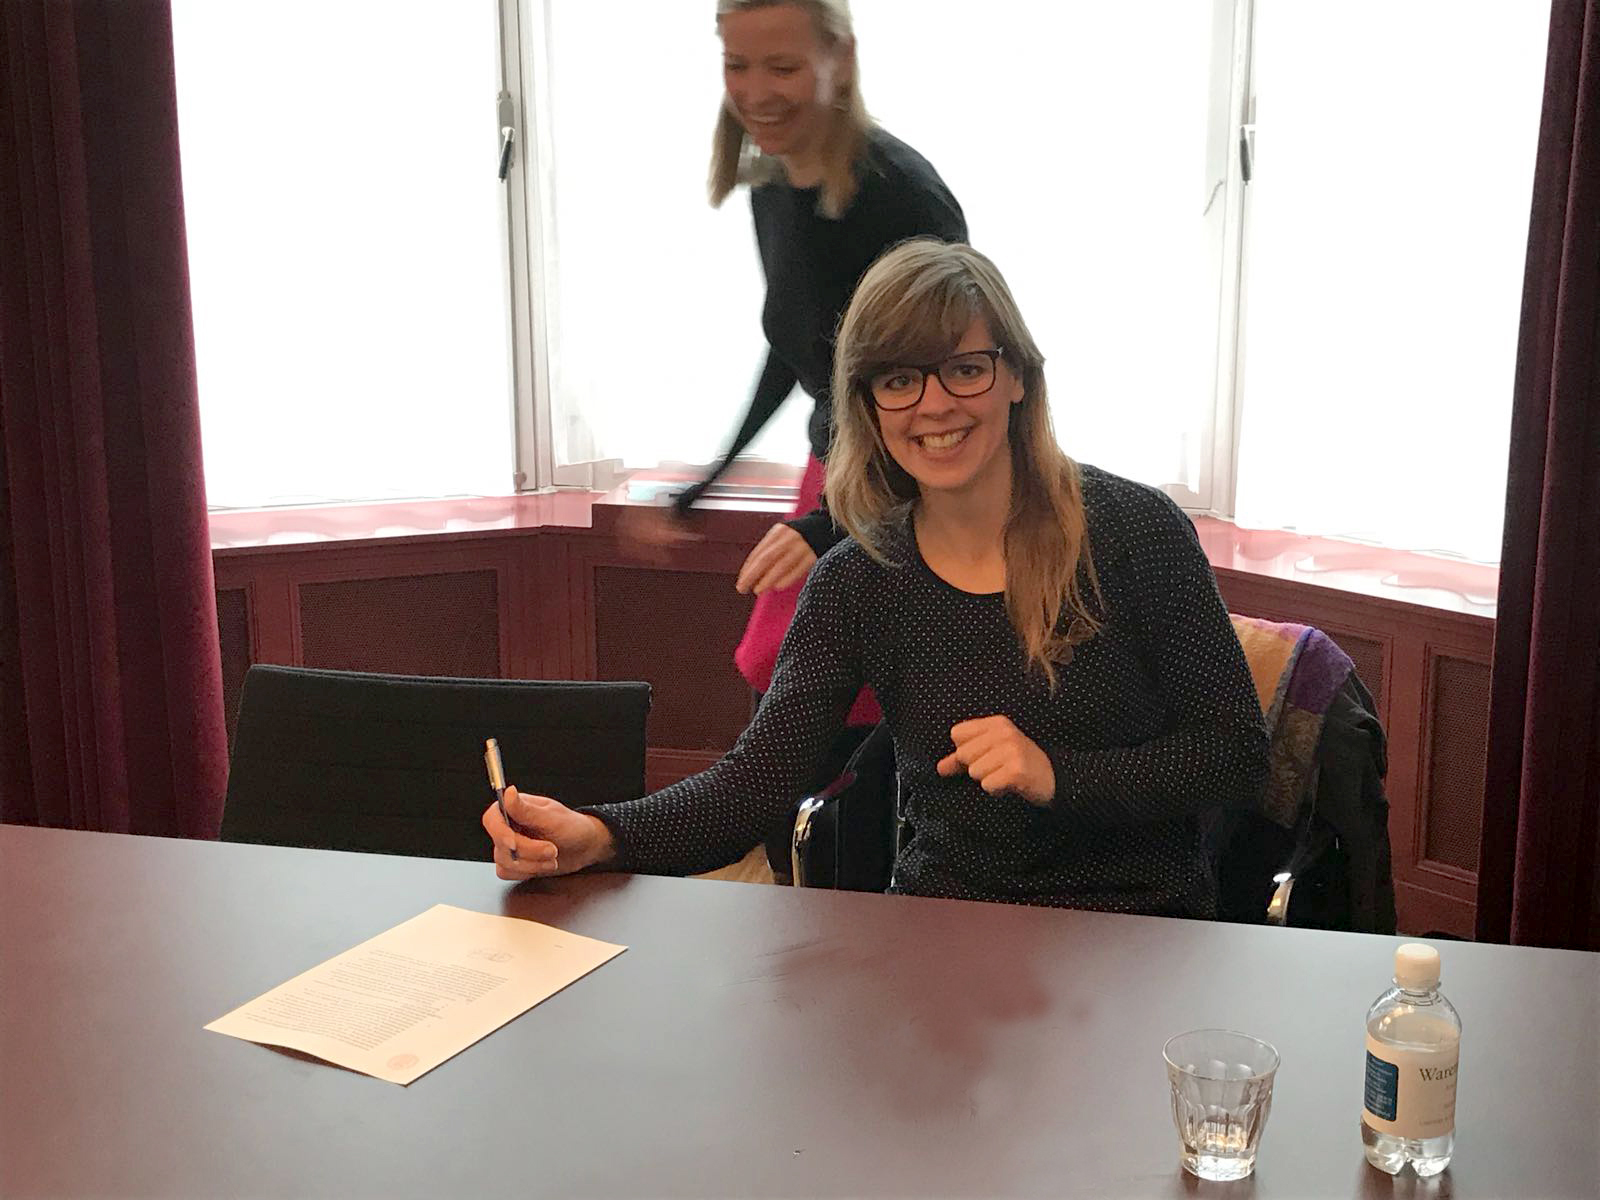 Signing the deed at Notary Warendorf, happy moment.